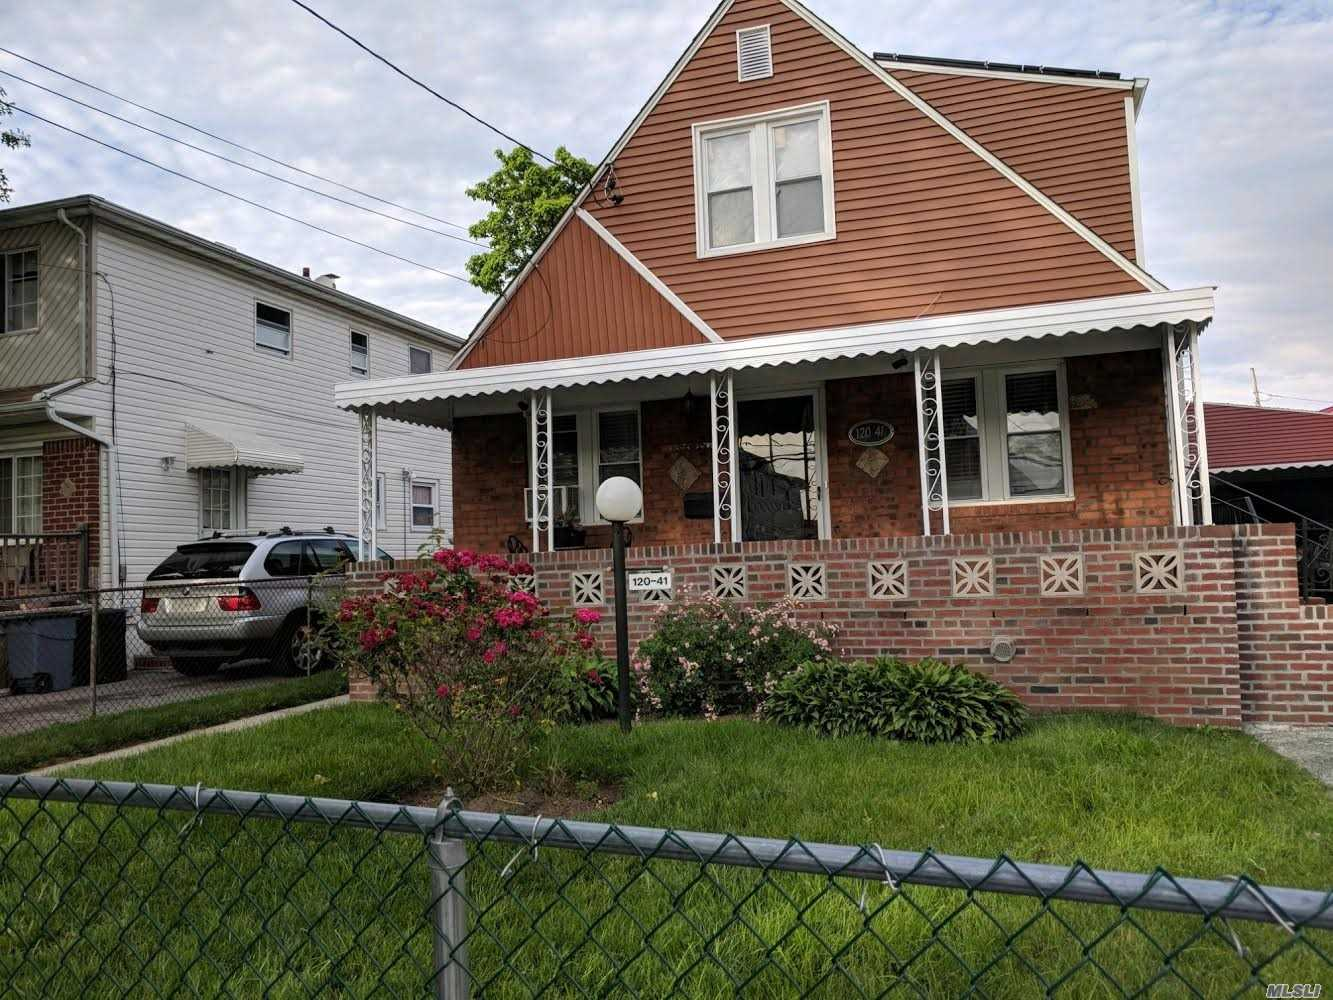 Photo of home for sale at 120-41 199th St, Springfield Gdns NY